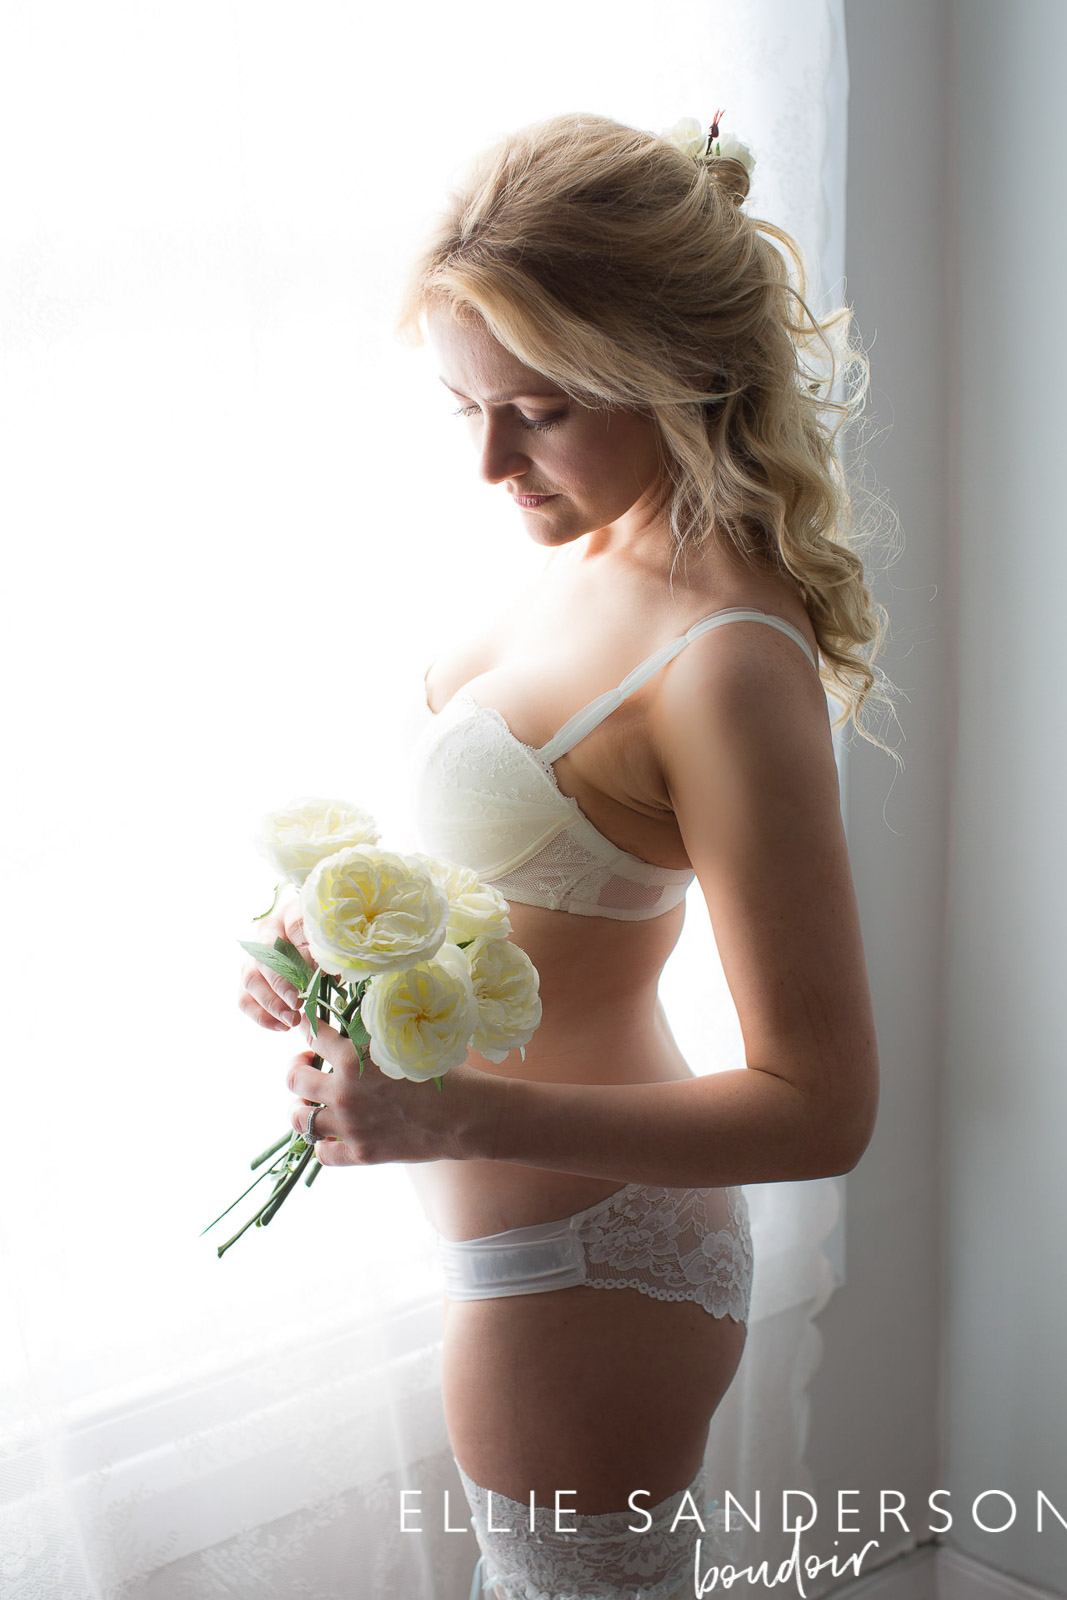 Bridal inspired boudoir shoot with flowers